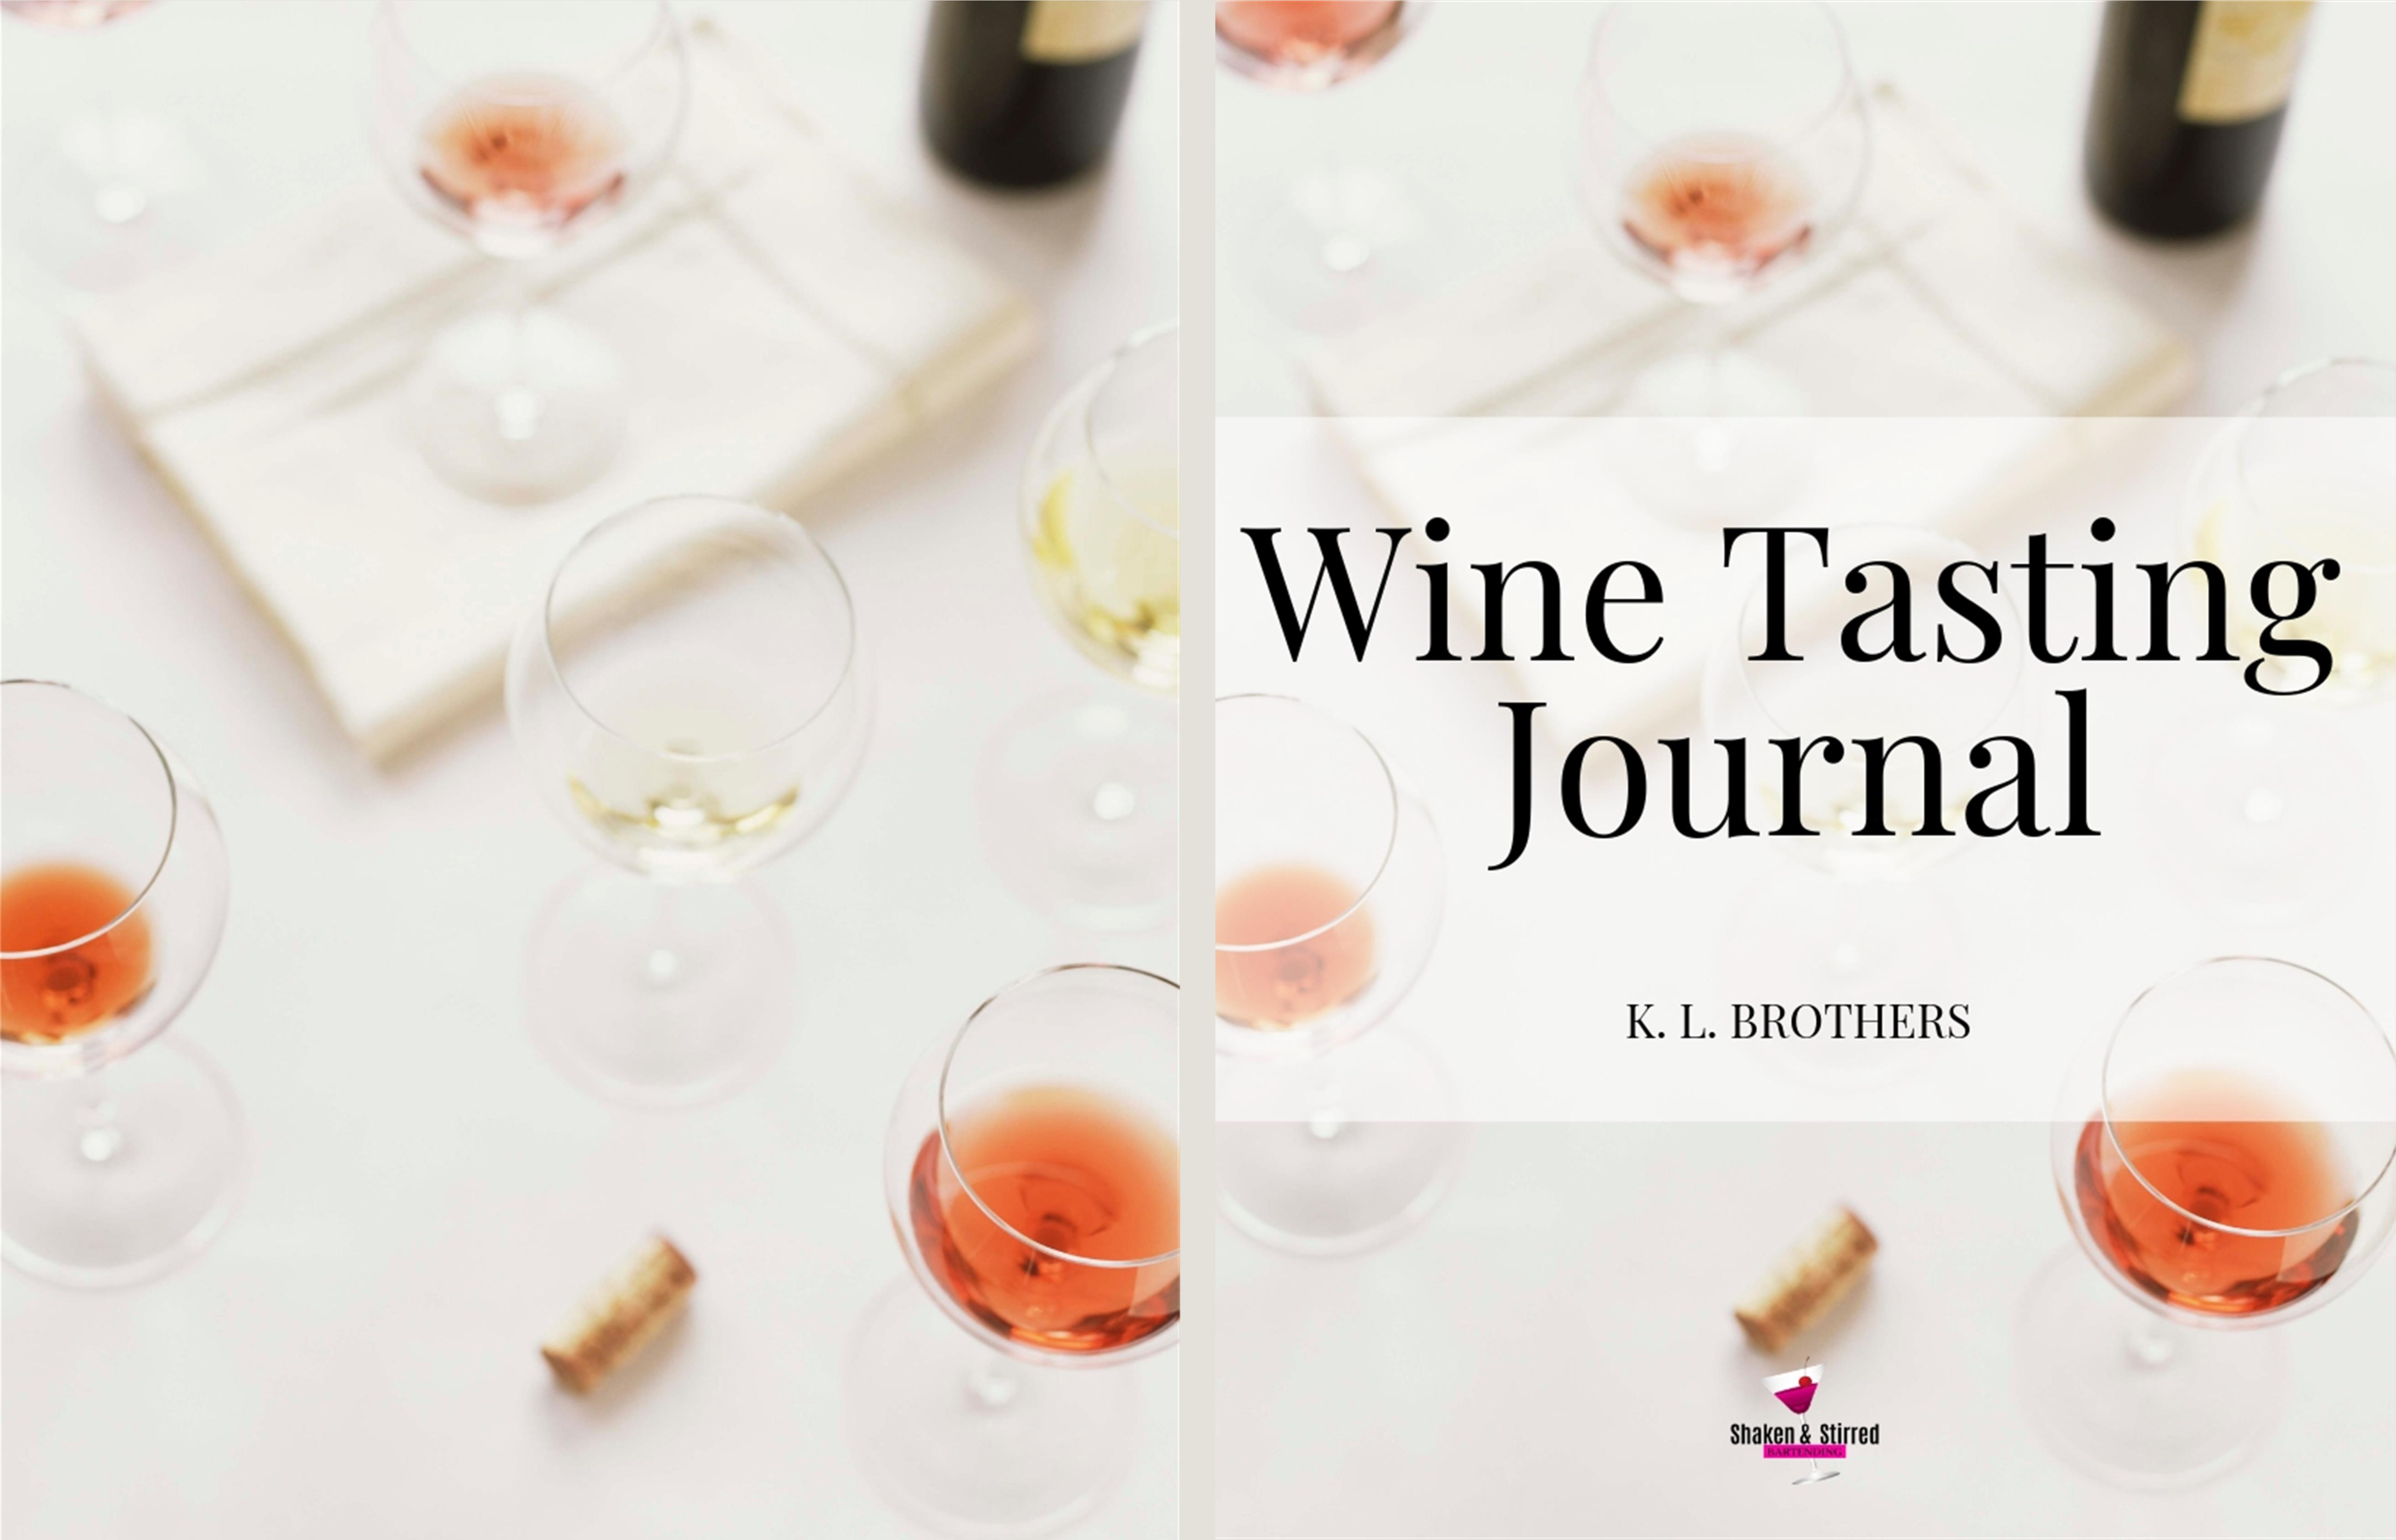 Wine Tasting Journal cover image